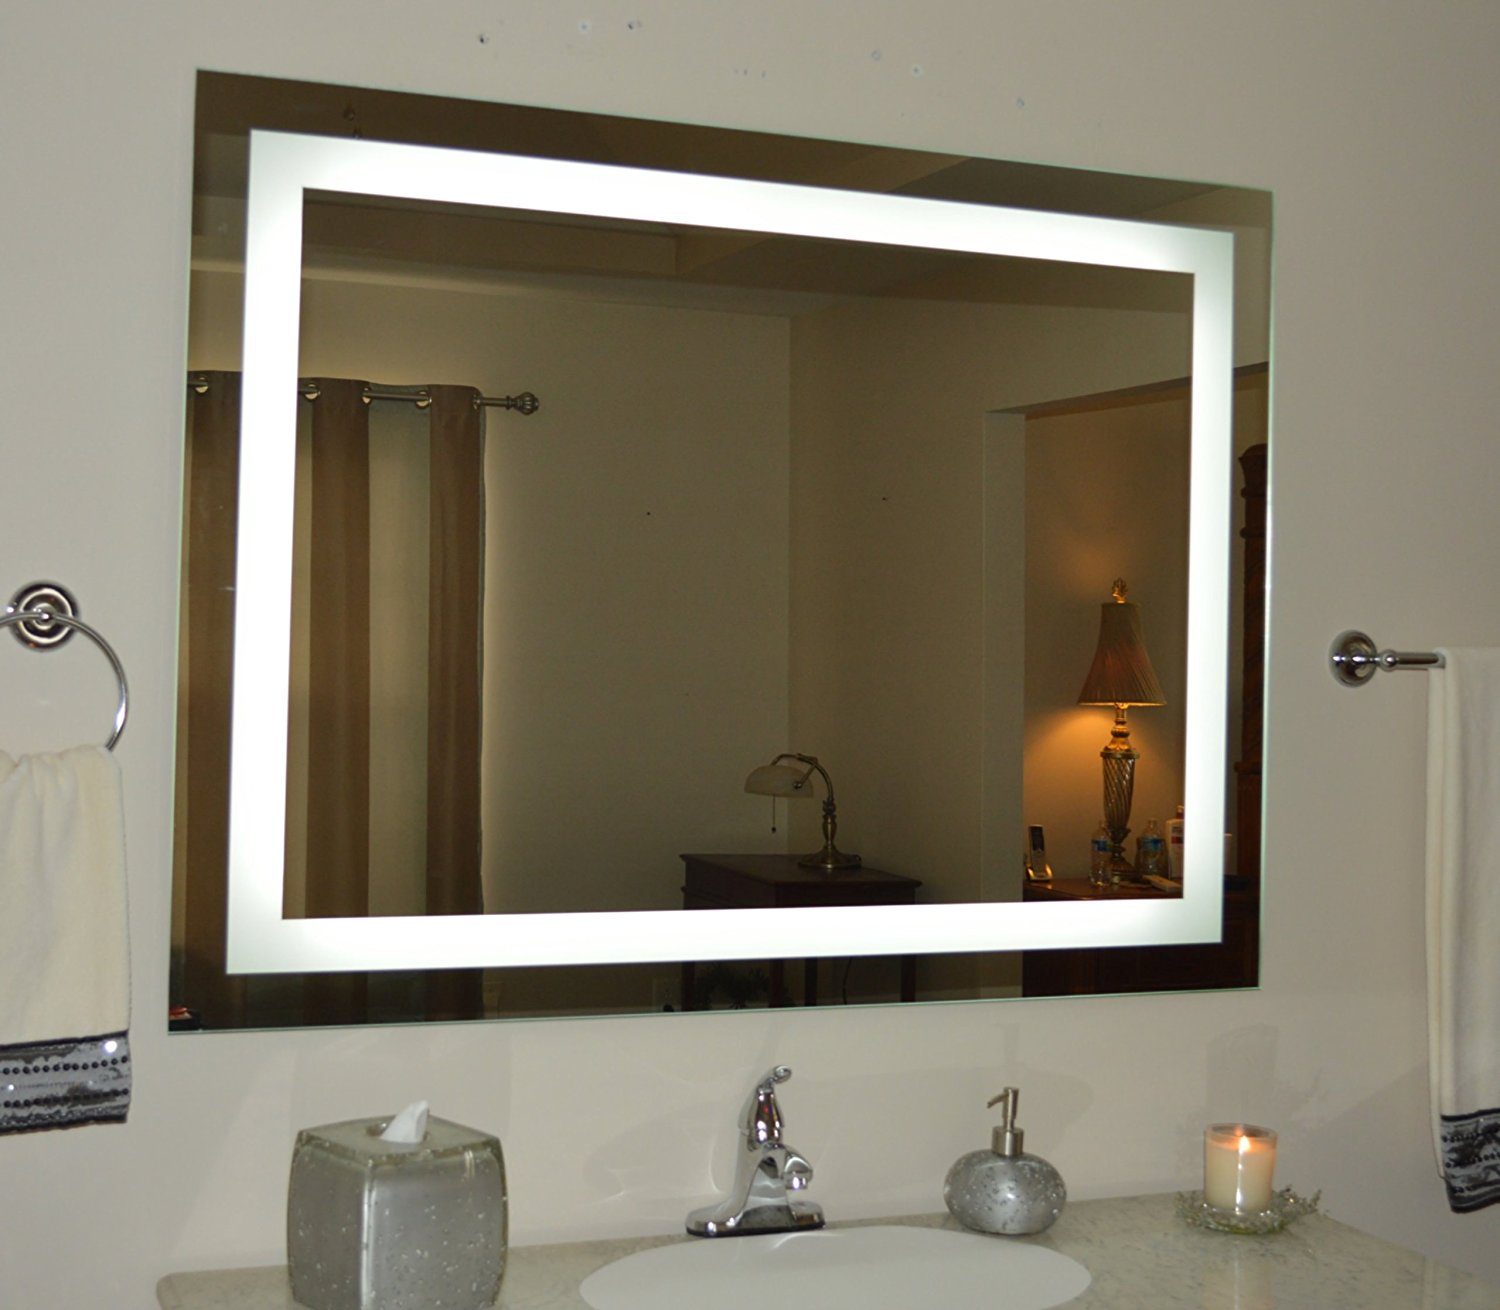 bathroom vanity mirrors with lights amazon.com: wall mounted lighted vanity mirror led mam84836 commercial  grade 48: CMVNXDZ